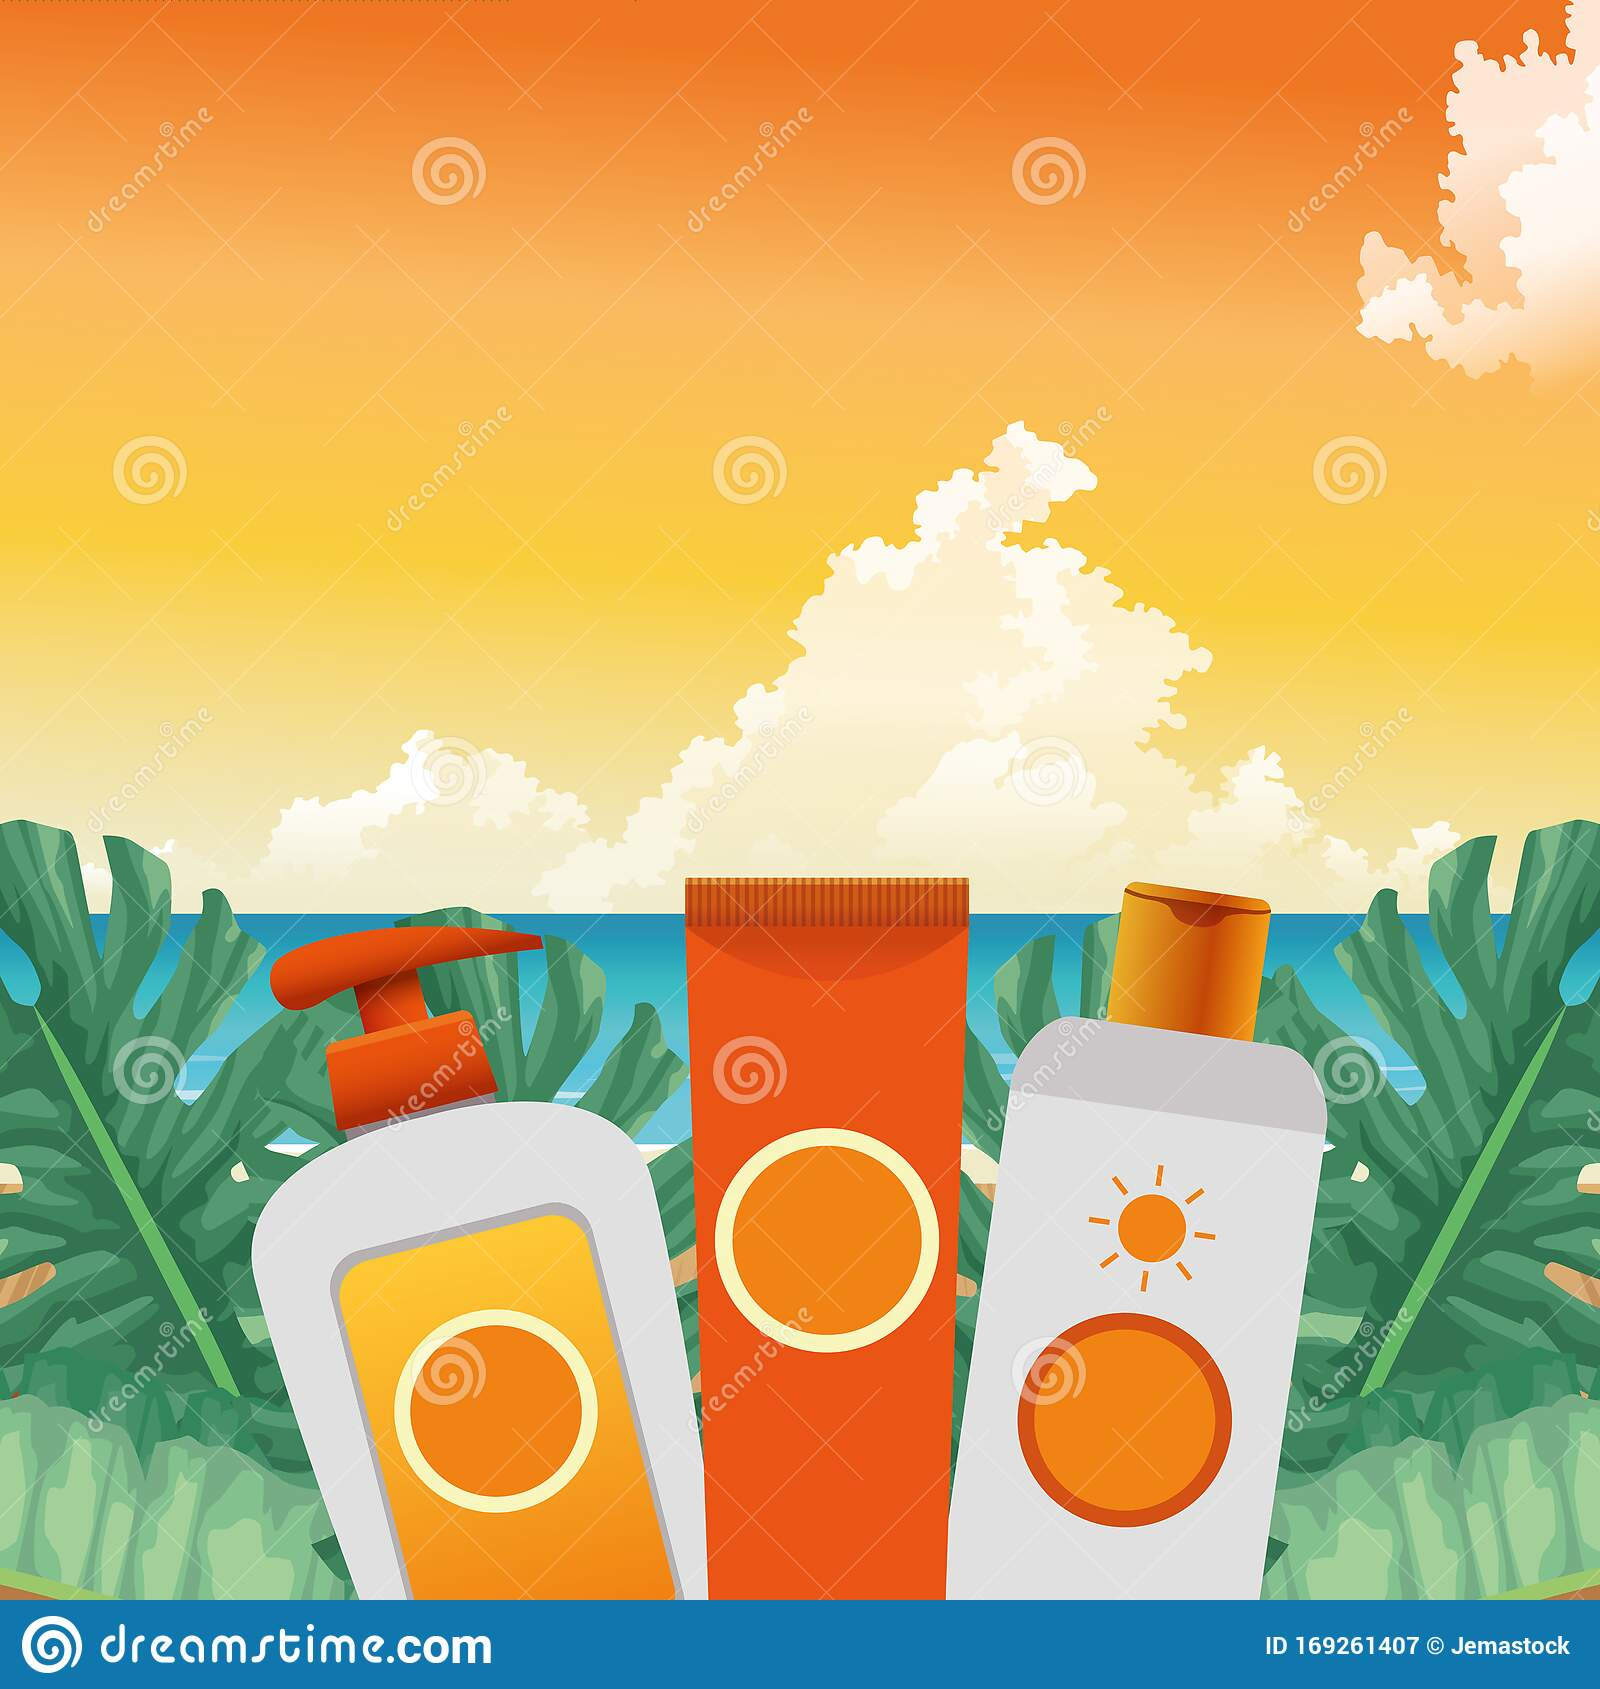 Summer Time In Beach Vacations Bottle Creams Skin Care Sun Blocks Foliage Tropic Stock Vector Illustration Of Banner Palm 169261407